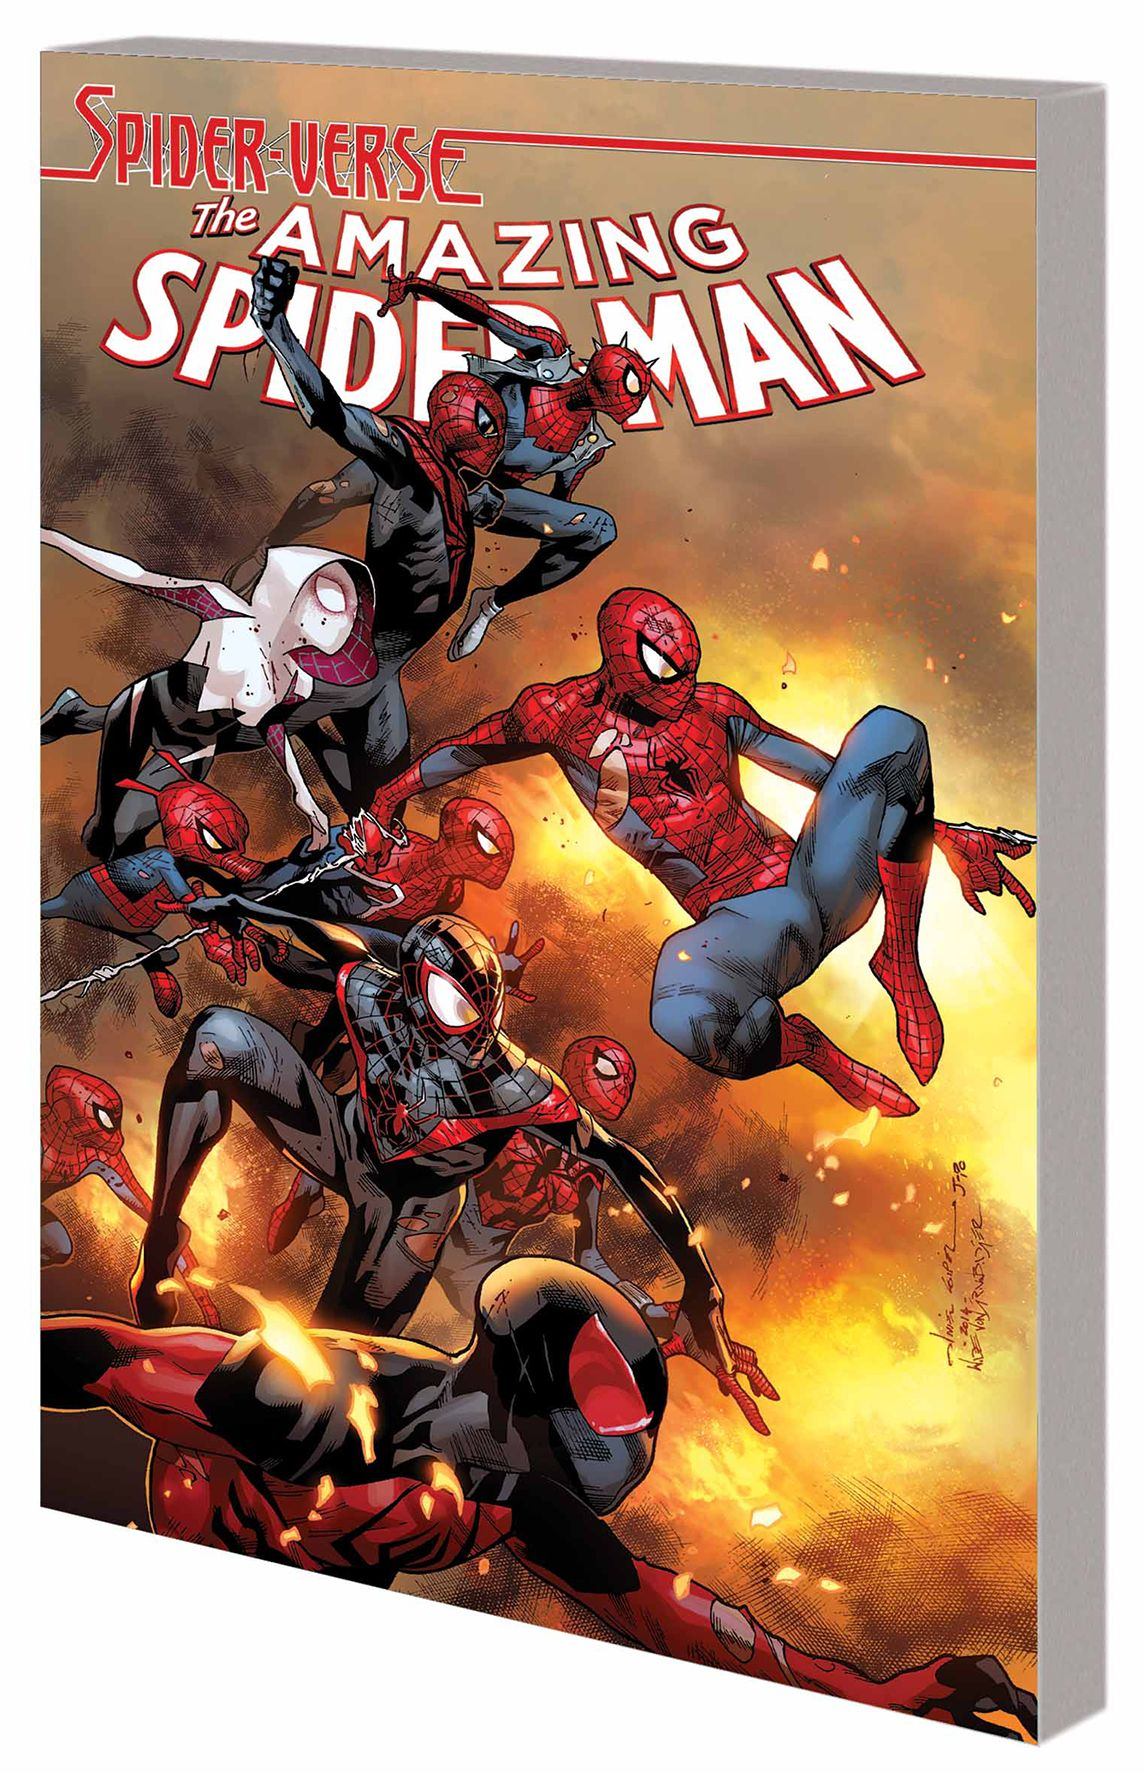 AMAZING SPIDER MAN TP VOL 03 SPIDER-VERSE